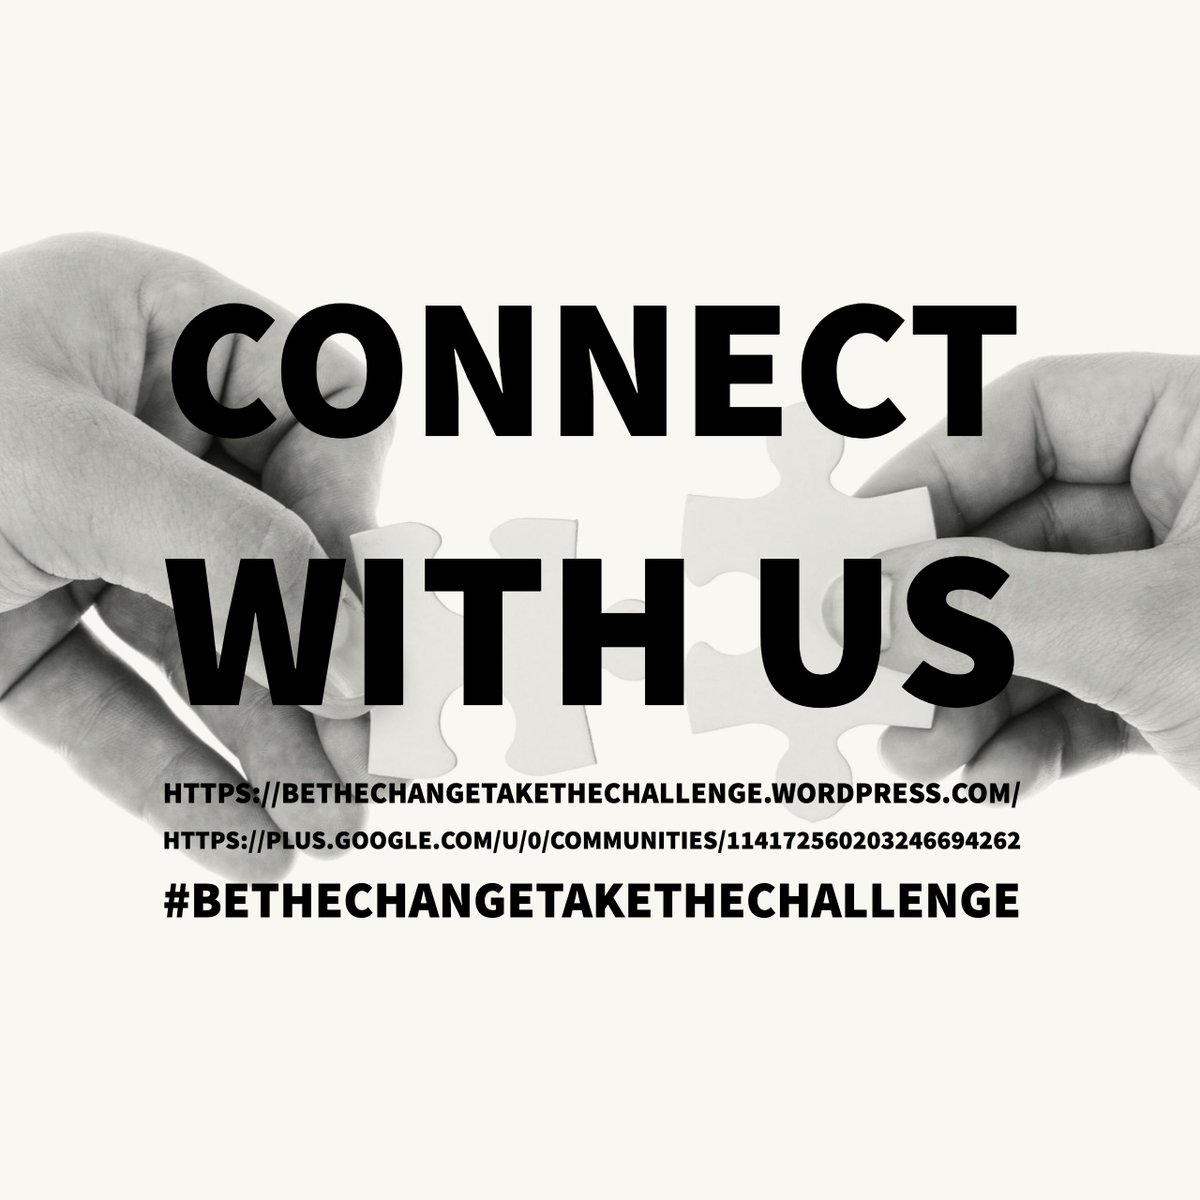 In 12 days&#39; time we will officially launch our project! … https://beth echangetakethechallenge.wordpress.com / &nbsp;   #bethechangetakethechallenge  #TeachSDGs <br>http://pic.twitter.com/ToOANIaDoM